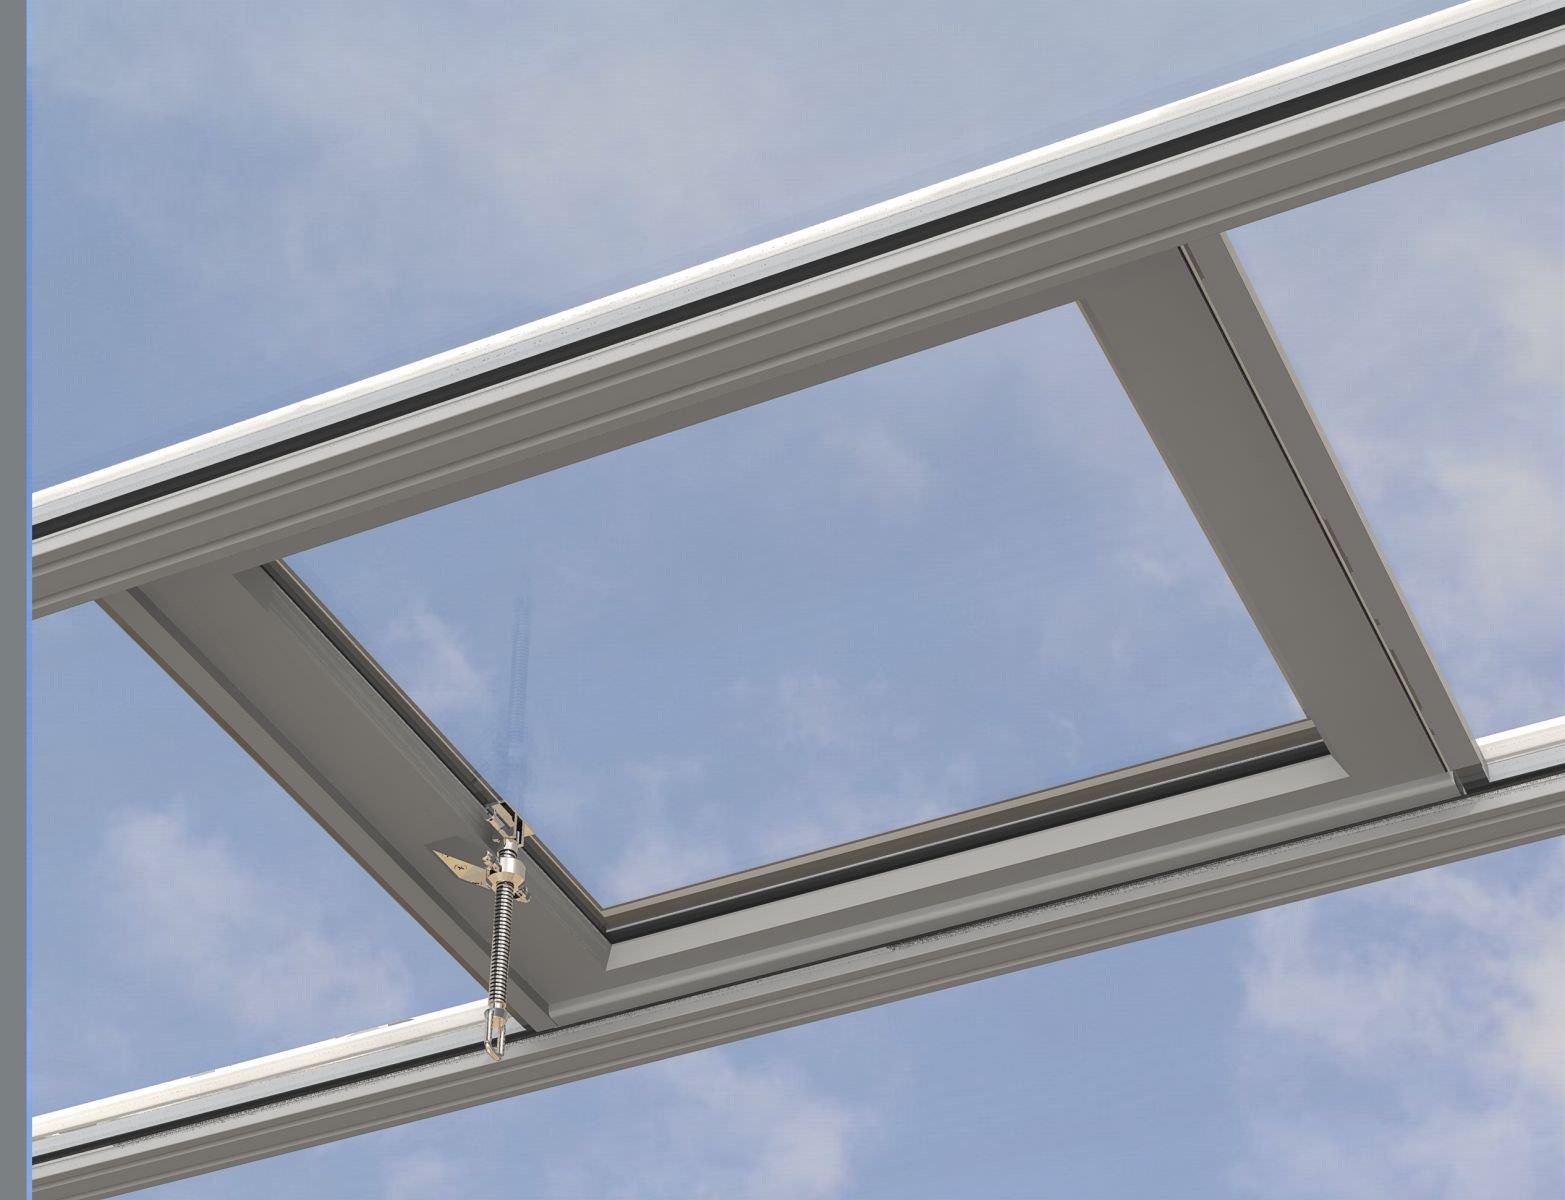 Ultraframe Trade Roof Vents